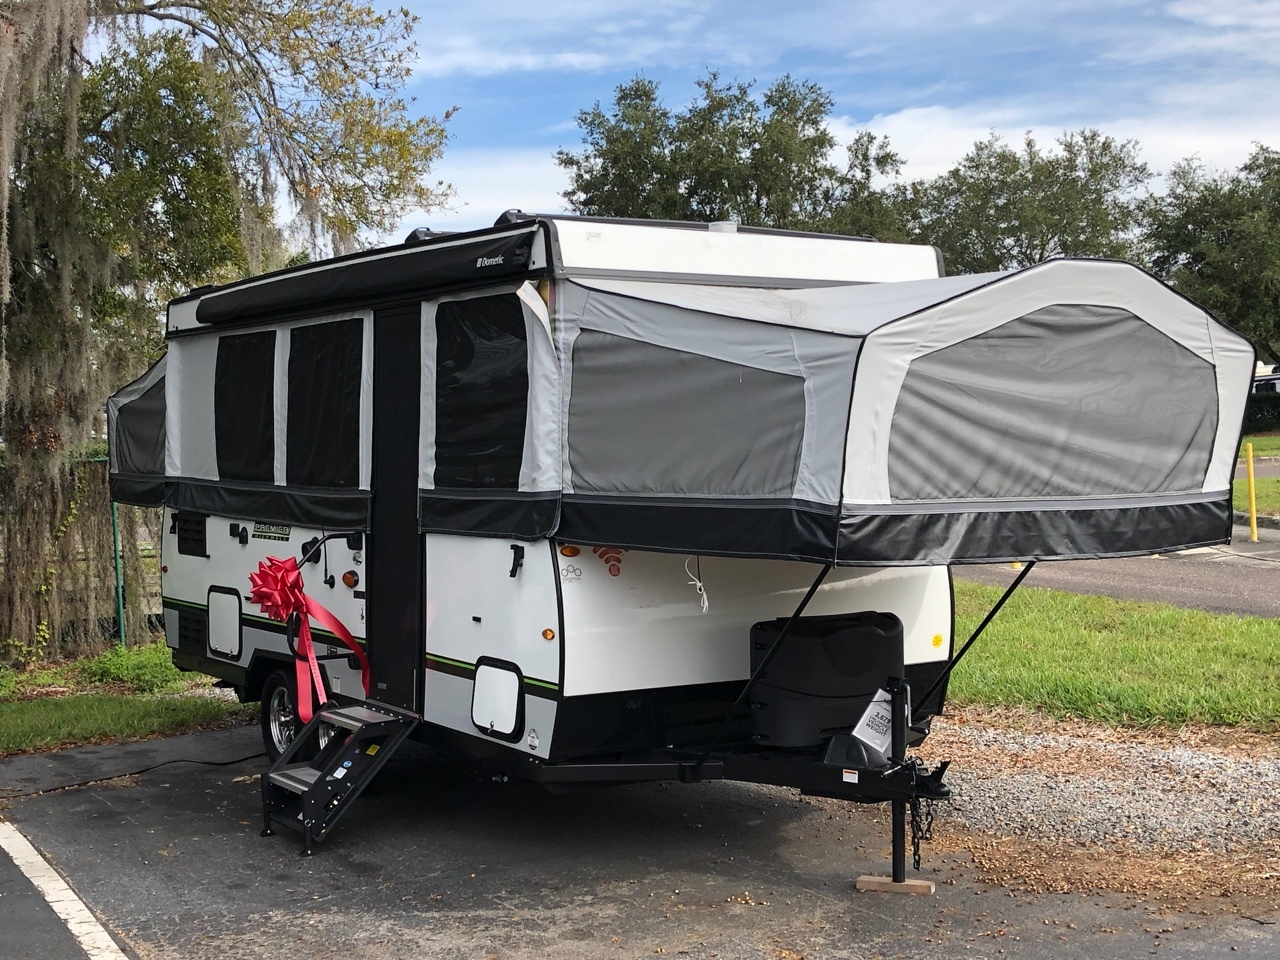 Pop Up Camper Gasgrill : Pop up campers for sale pop up campers rv trader